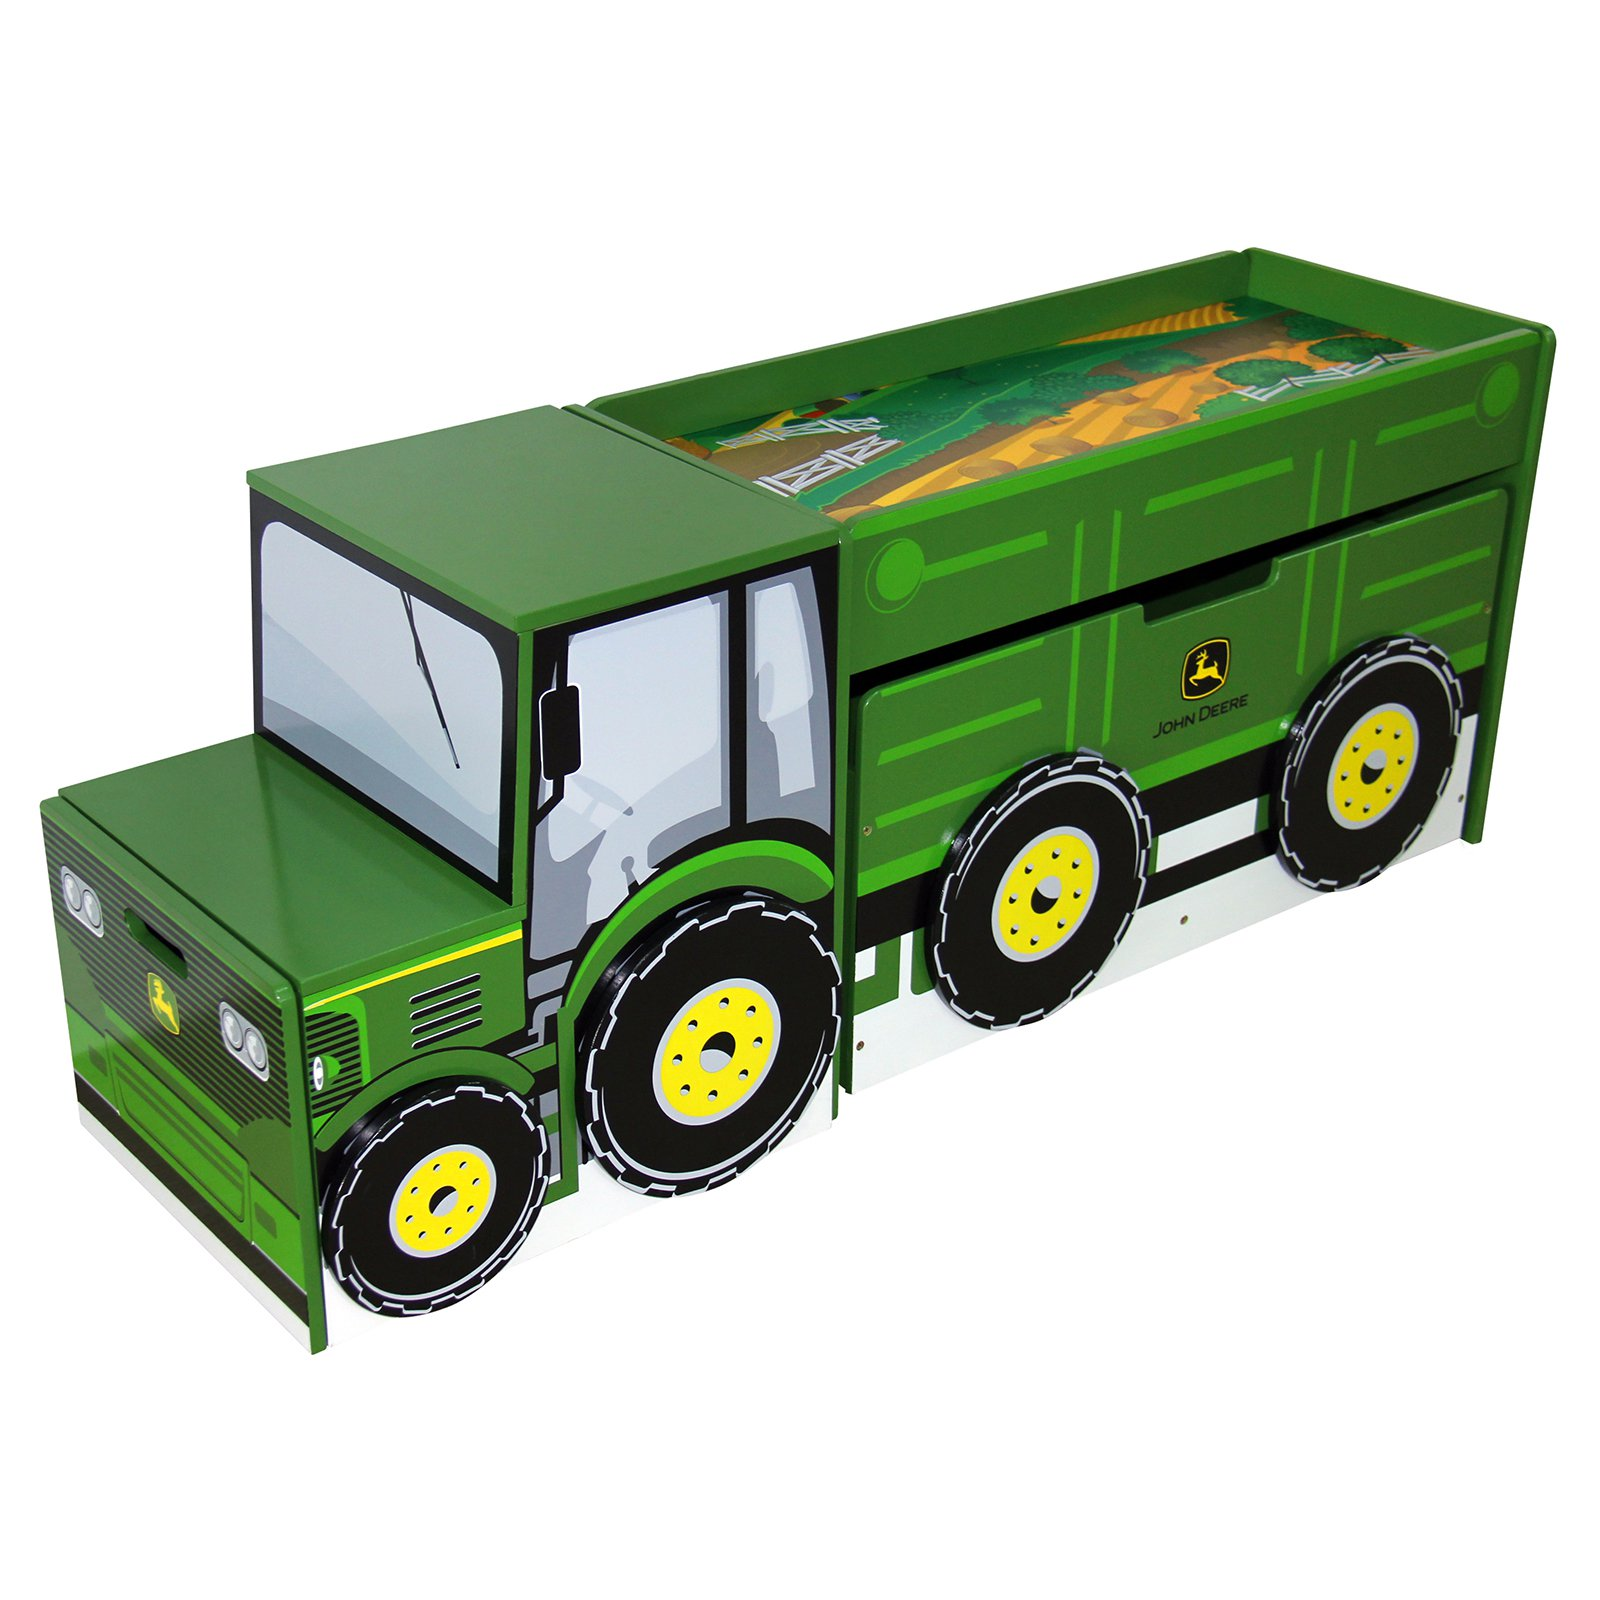 John Deere Tractor Toy Box Set by John Deere